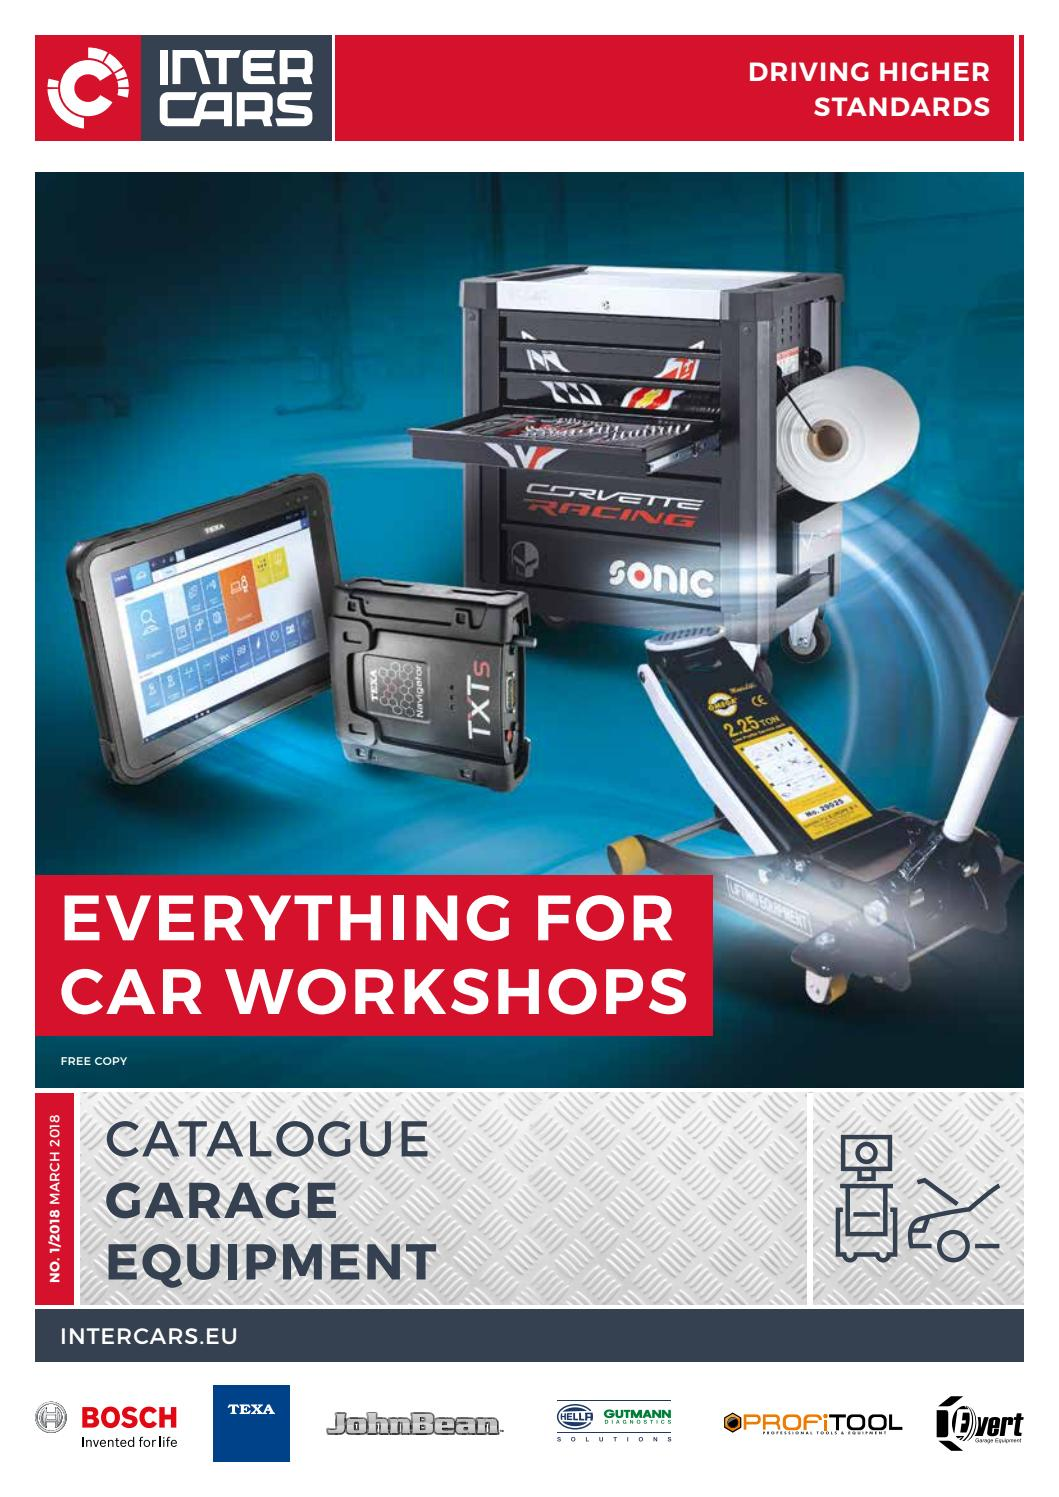 Garage Equipment Catalogue 2018 by InterCars SA - issuu